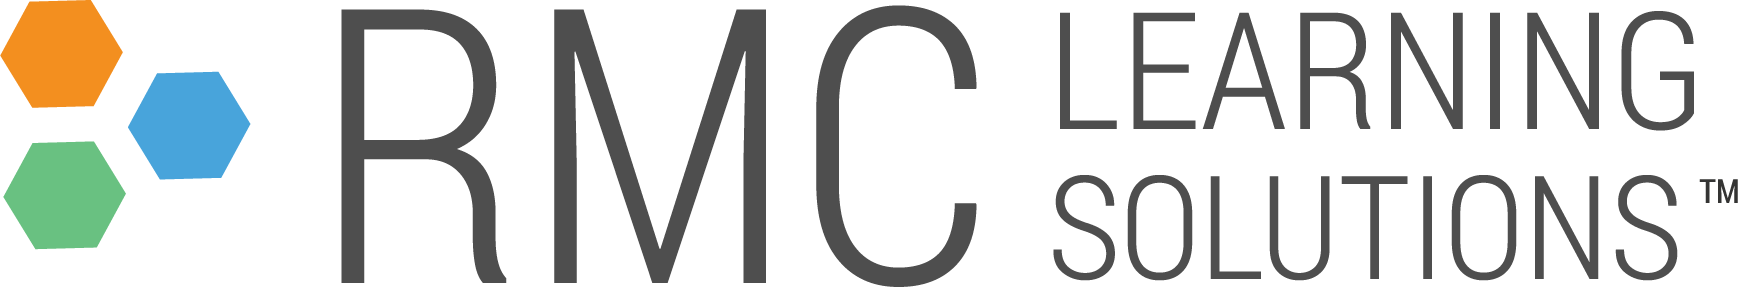 RMC Learning Solutions Logo